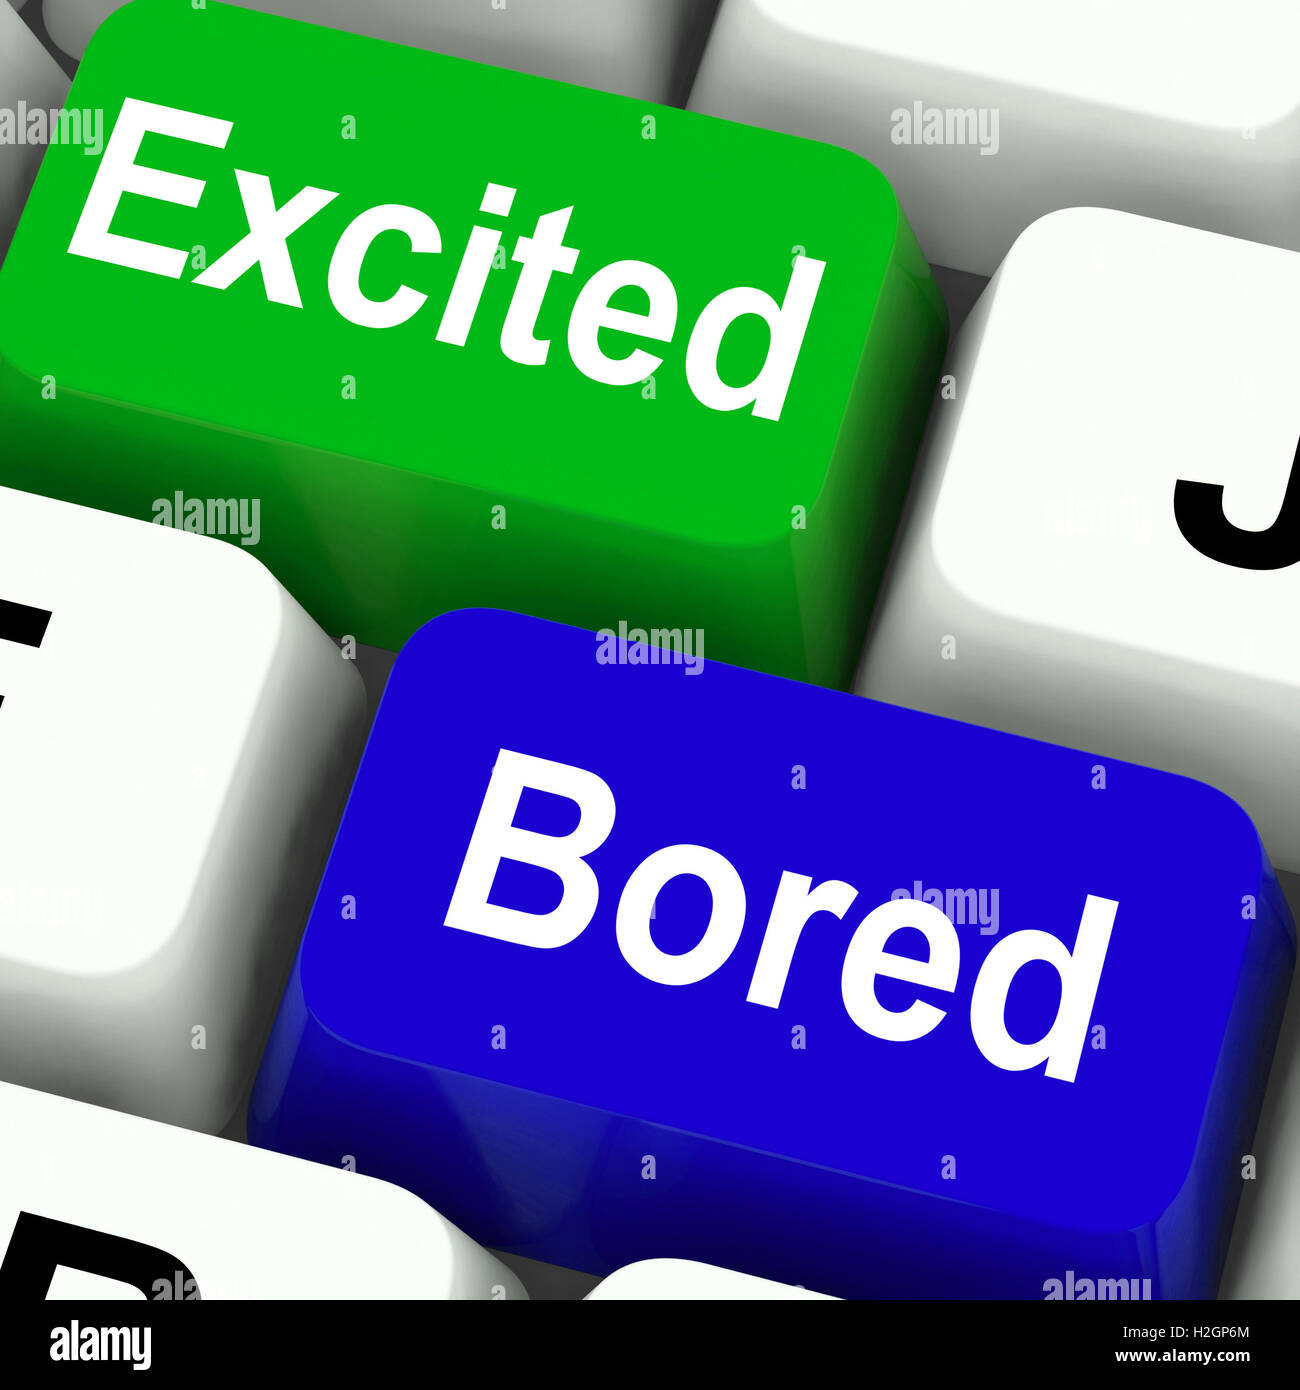 Excited Bored Keys Show Exciting And Boring Websites Stock Photo